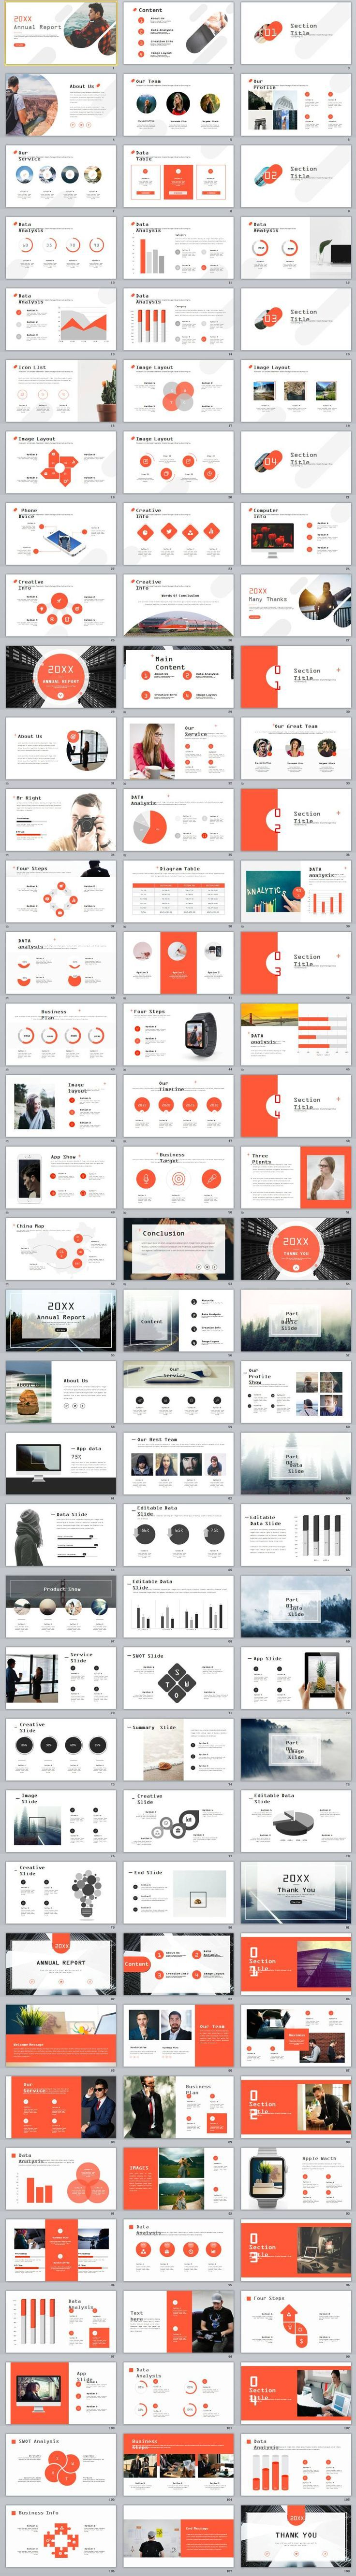 4in1 best creative annual report powerpoint template graphic 4in1 best creative annual report powerpoint template presentation designpresentation alramifo Image collections